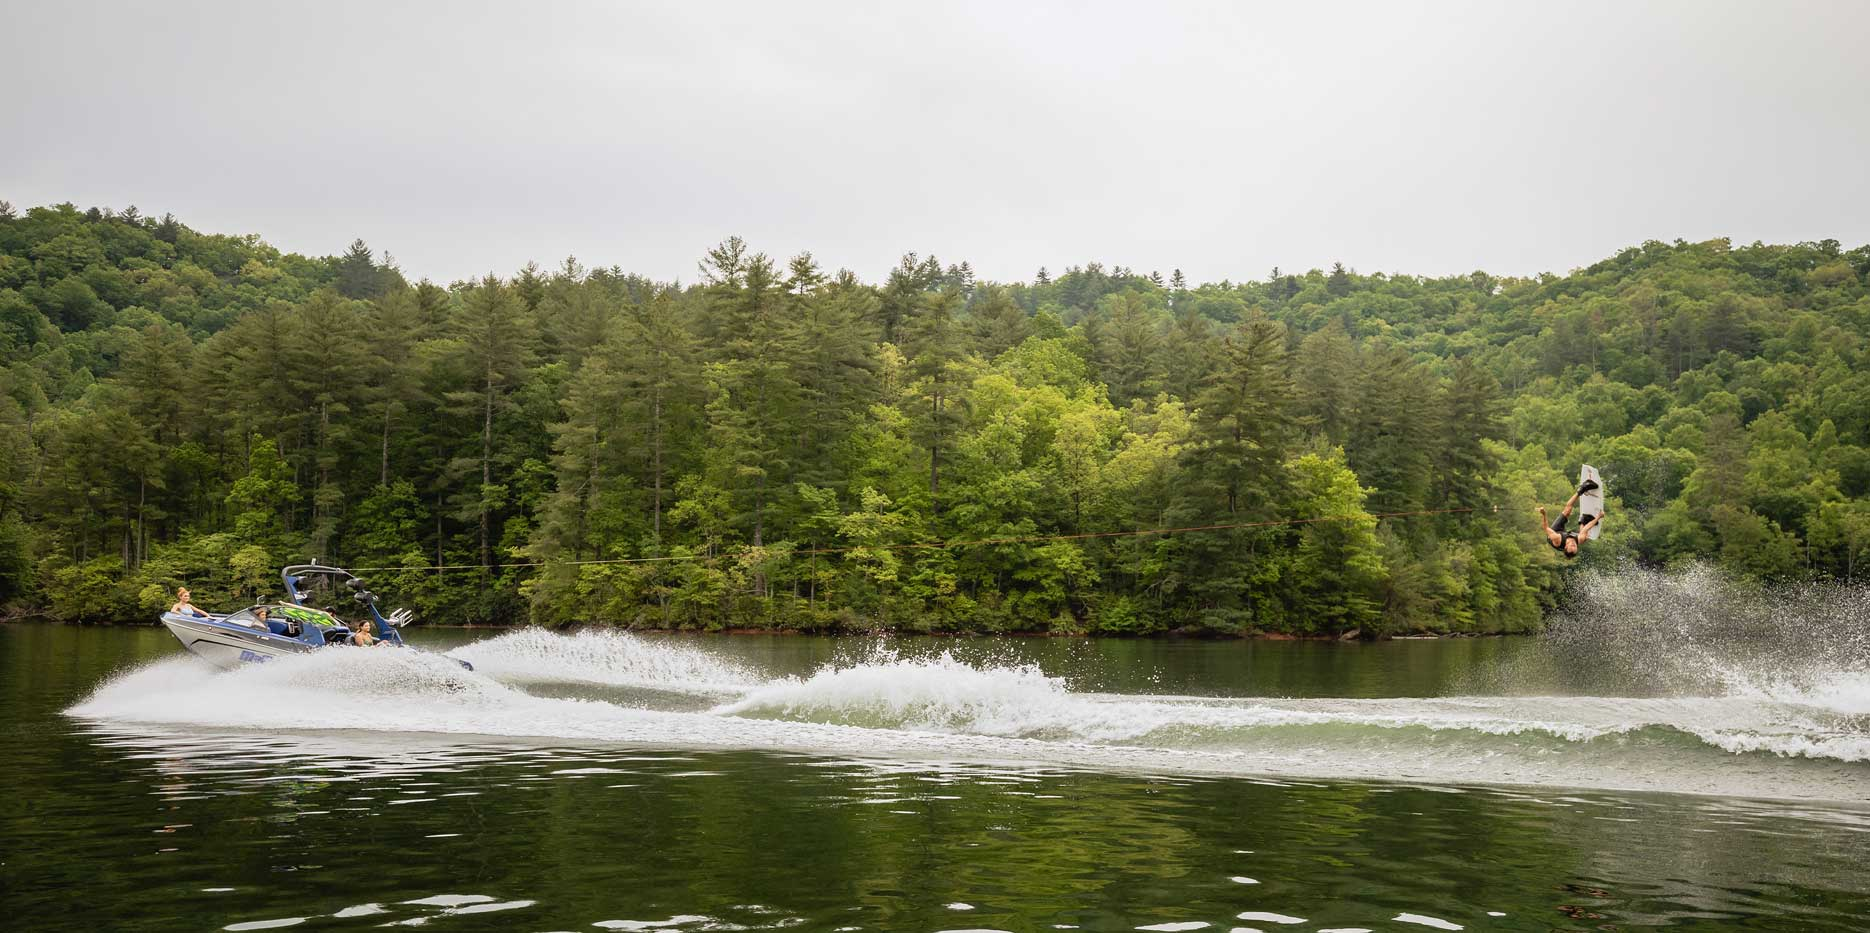 23 LSV Wakeboard Action